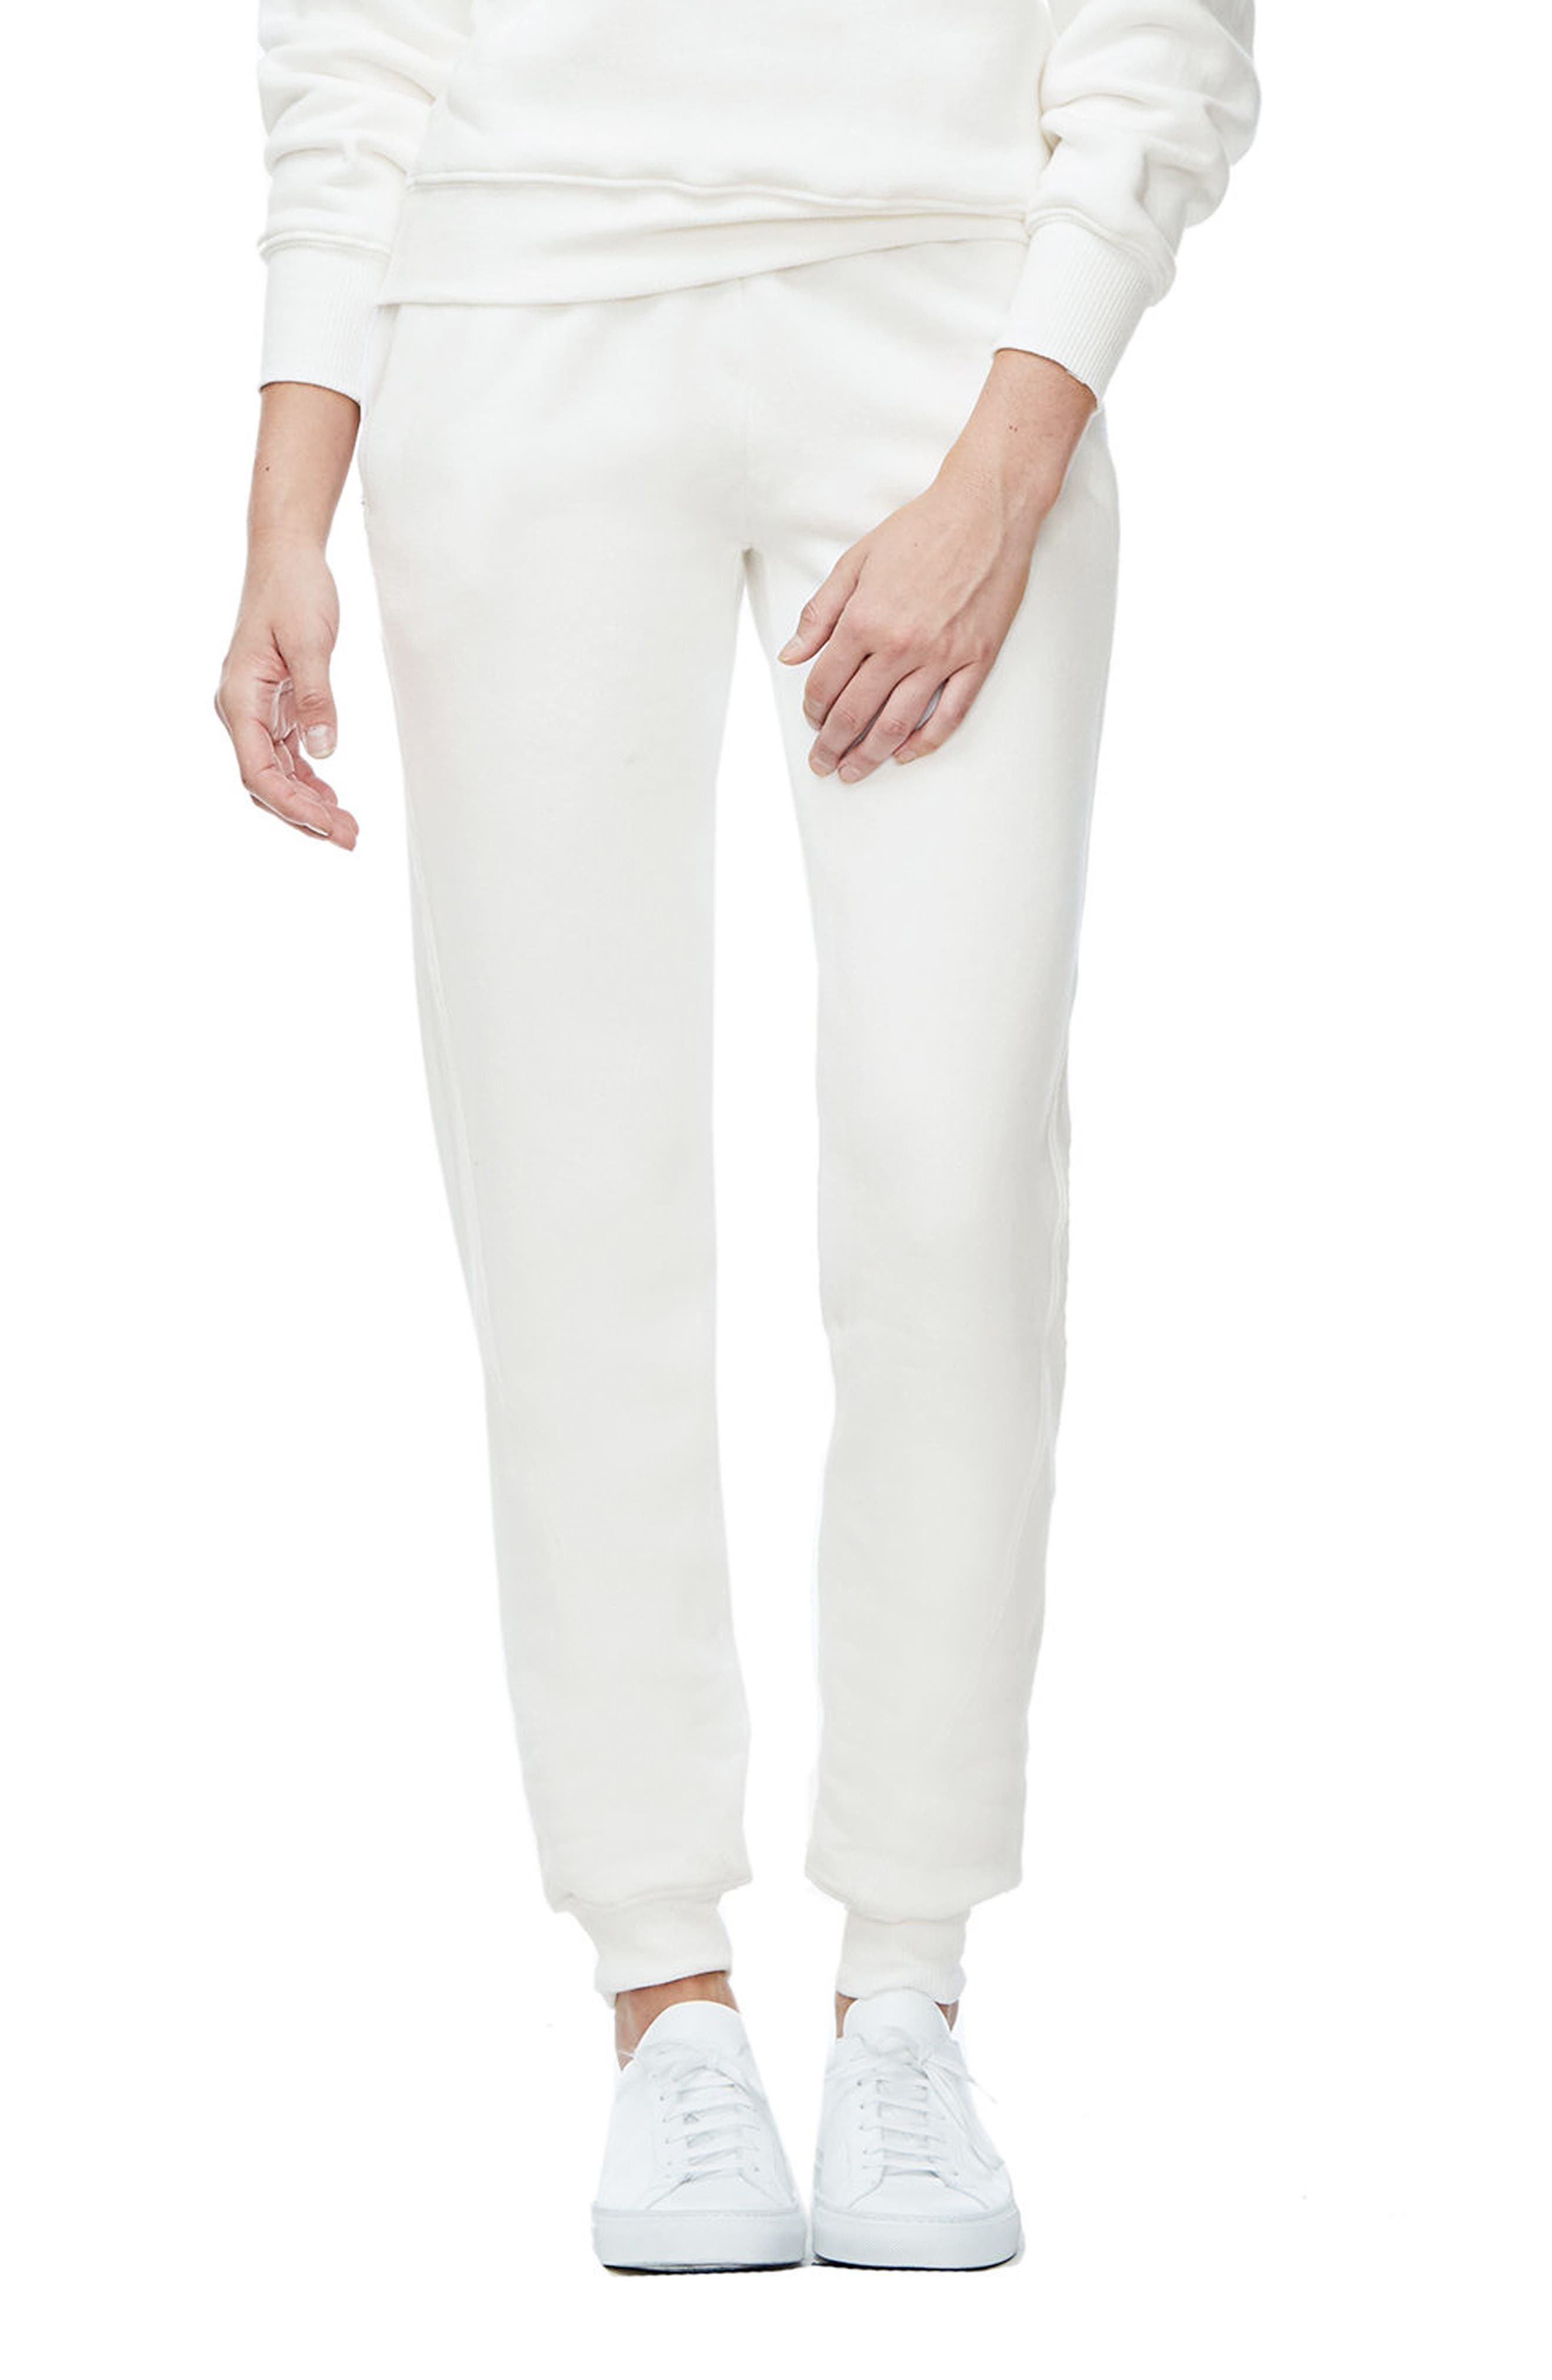 Main Image - Good American Good Sweats The Twisted Seam Pants (Extended Sizes)